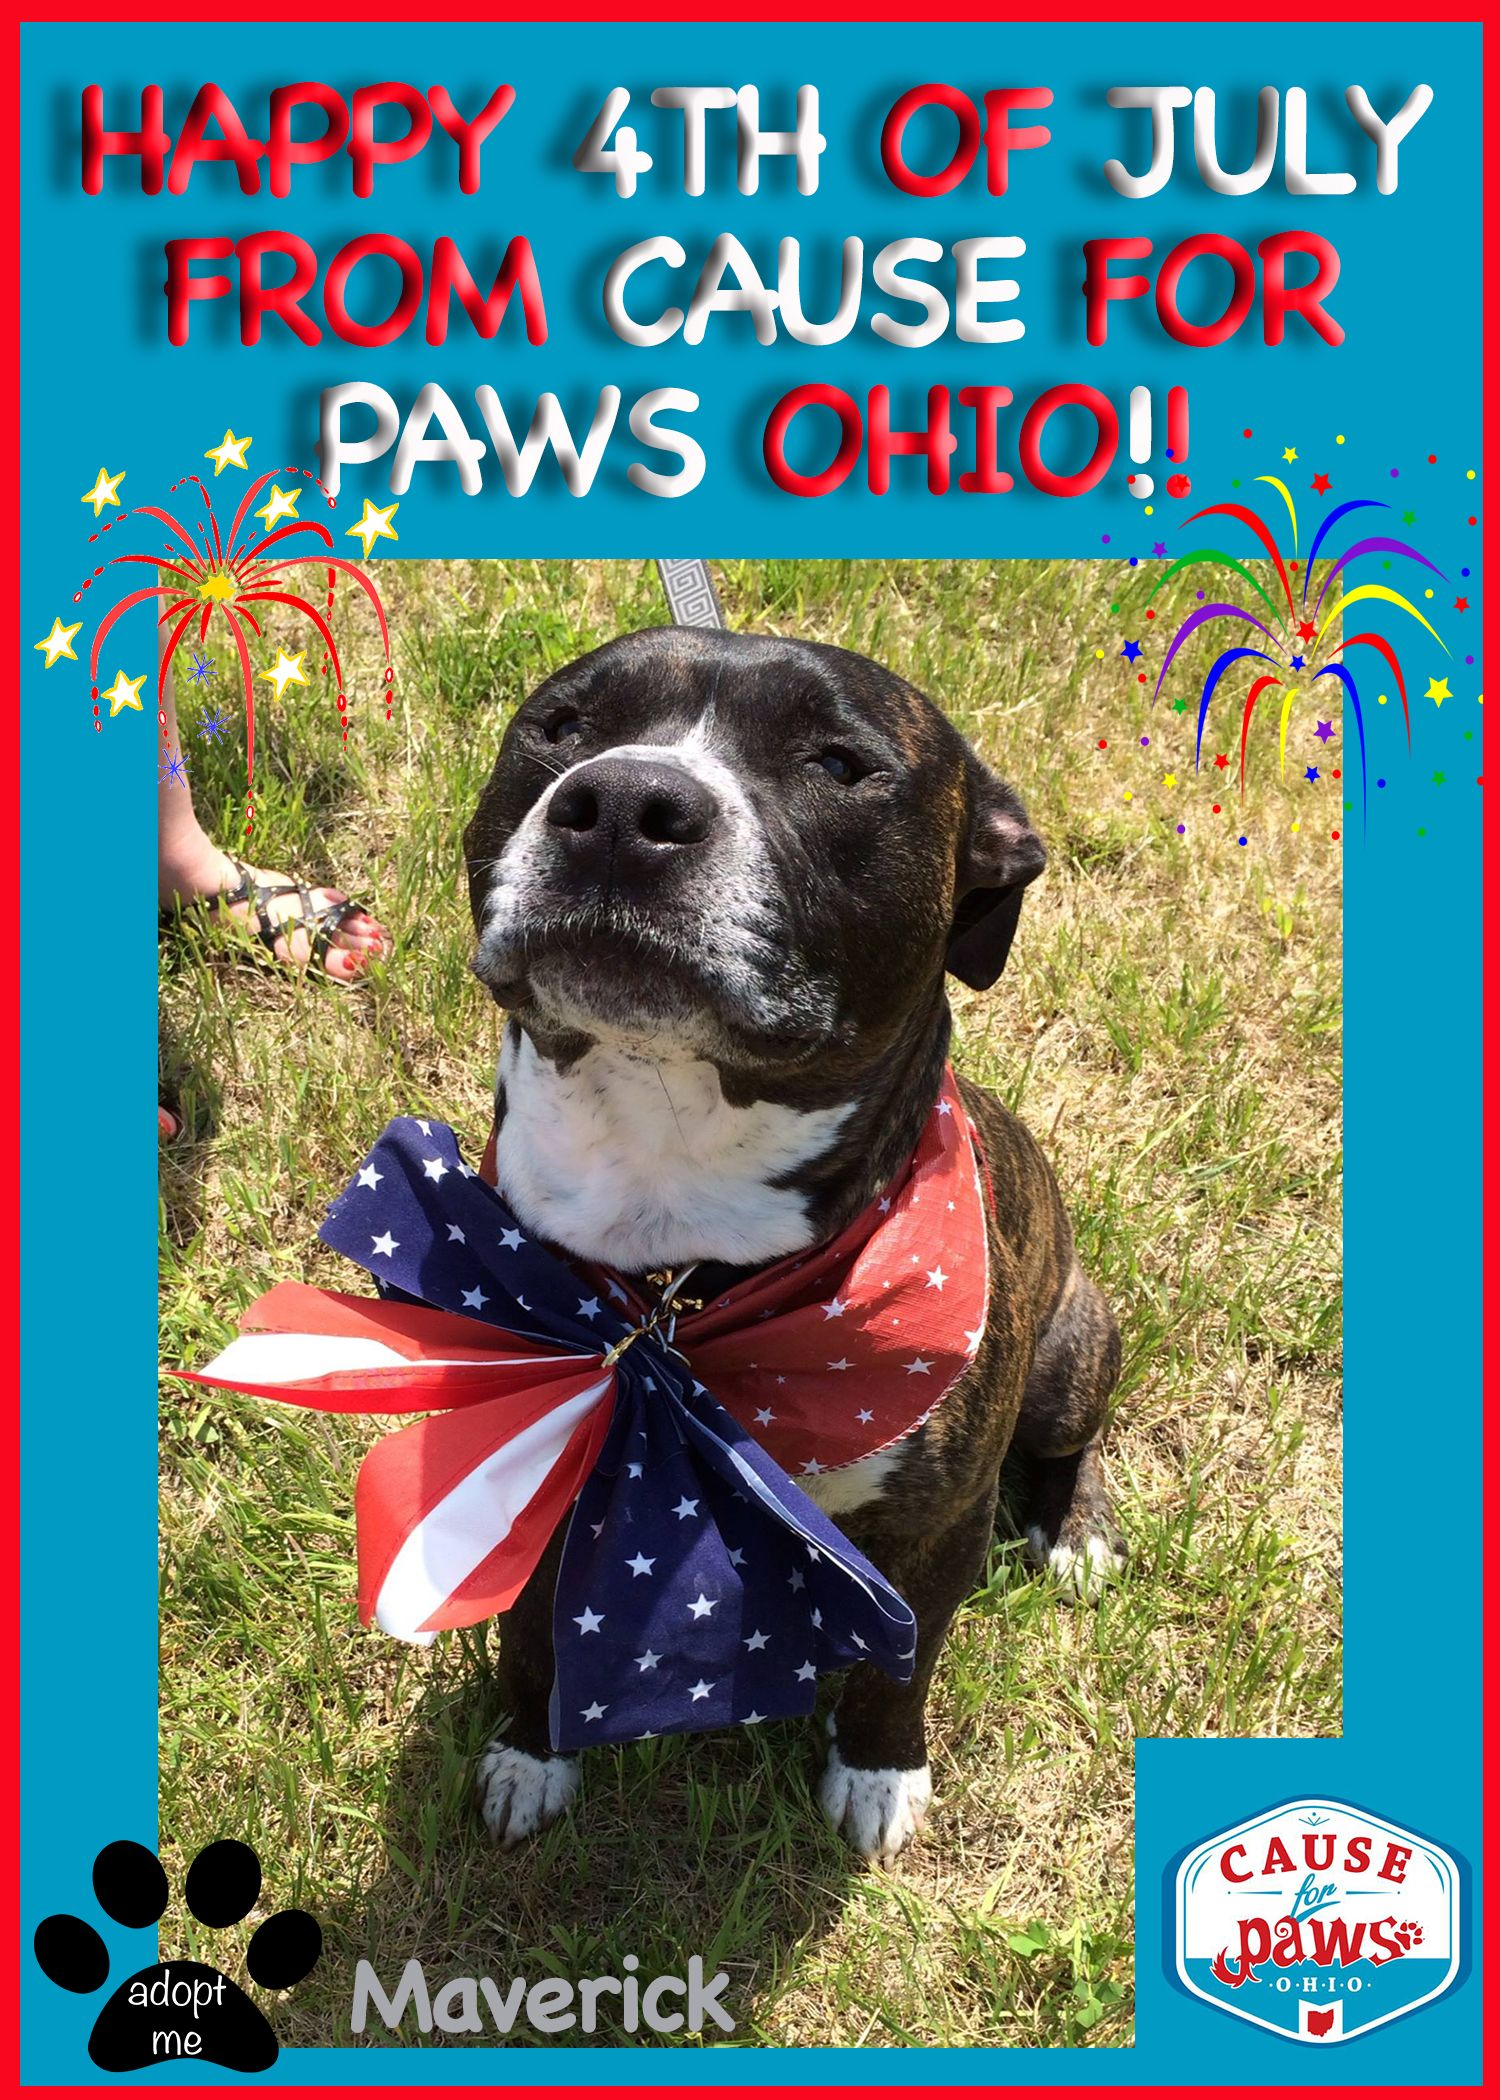 Happy 4th Of July From Cause For Paws Ohio Causeforpawsohio Com Happy 4 Of July Paw 4th Of July